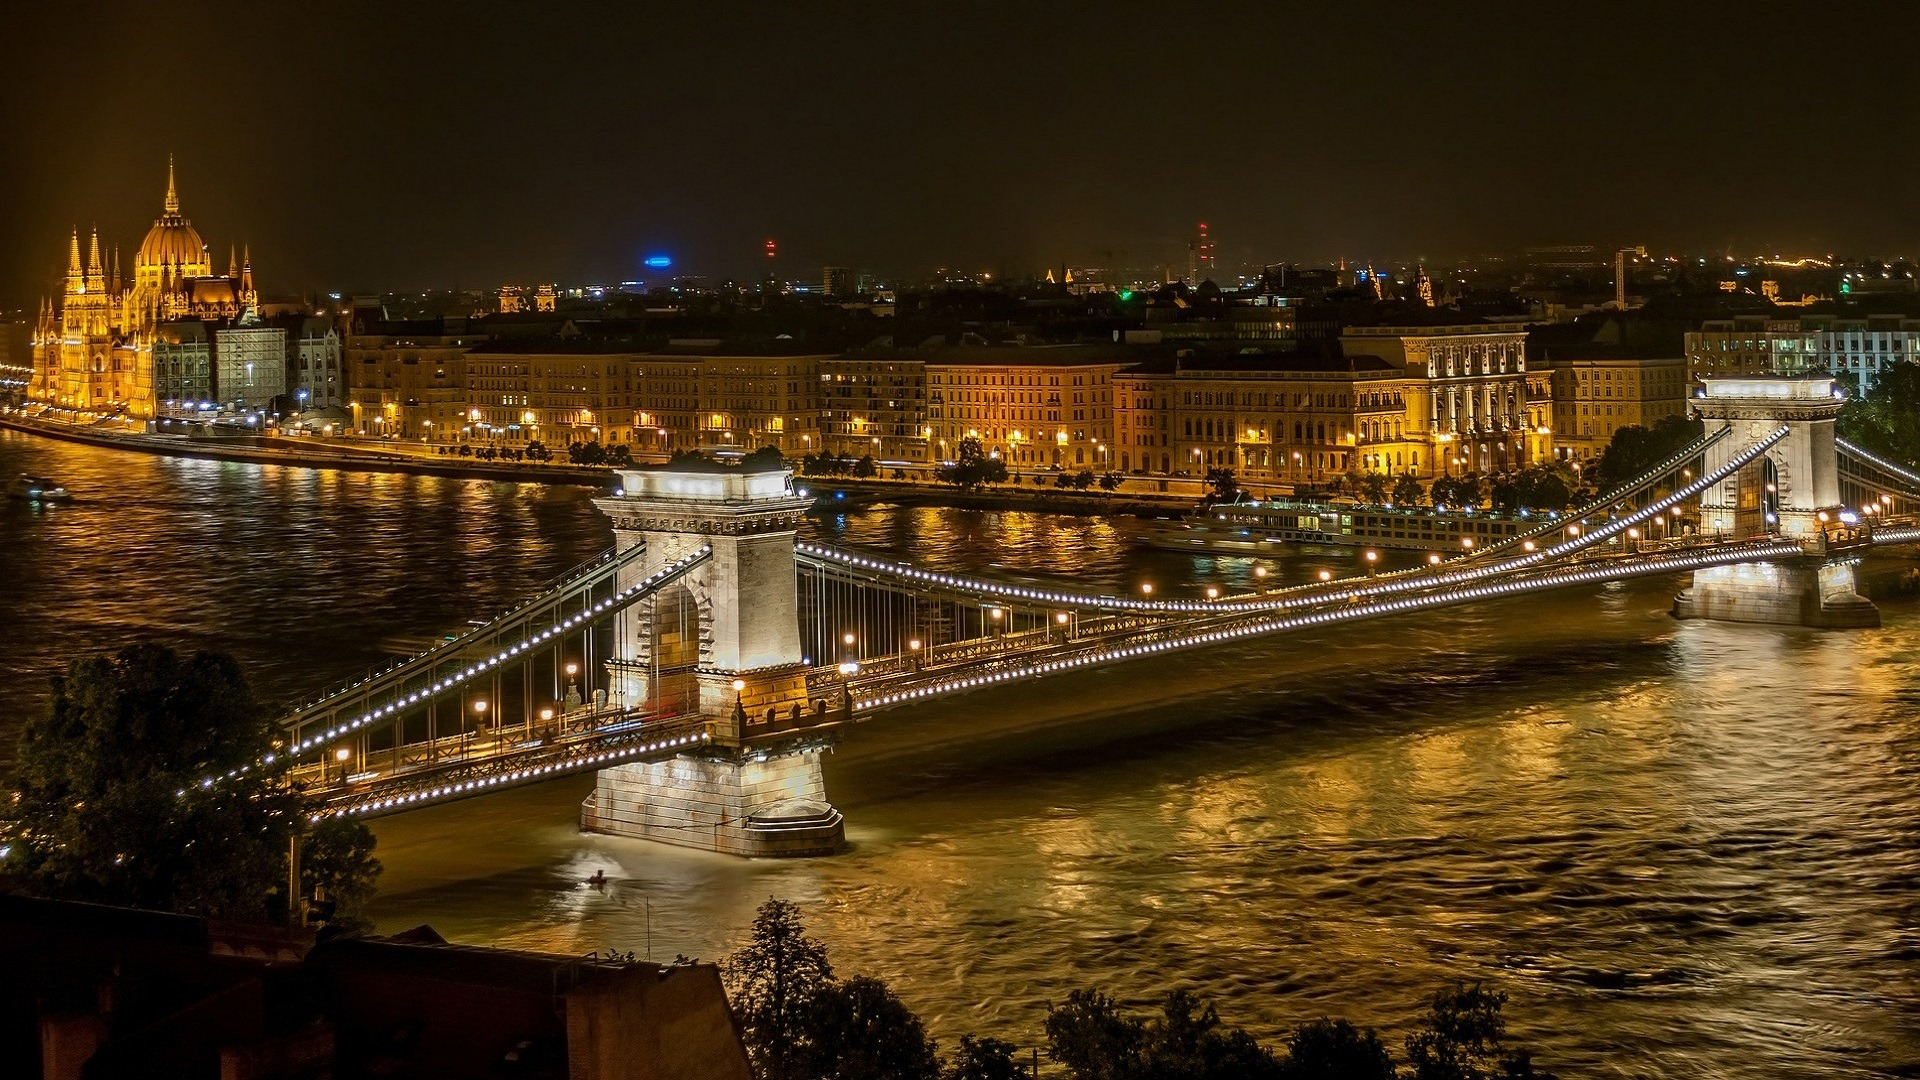 night view, bridge, buildings and waterbody